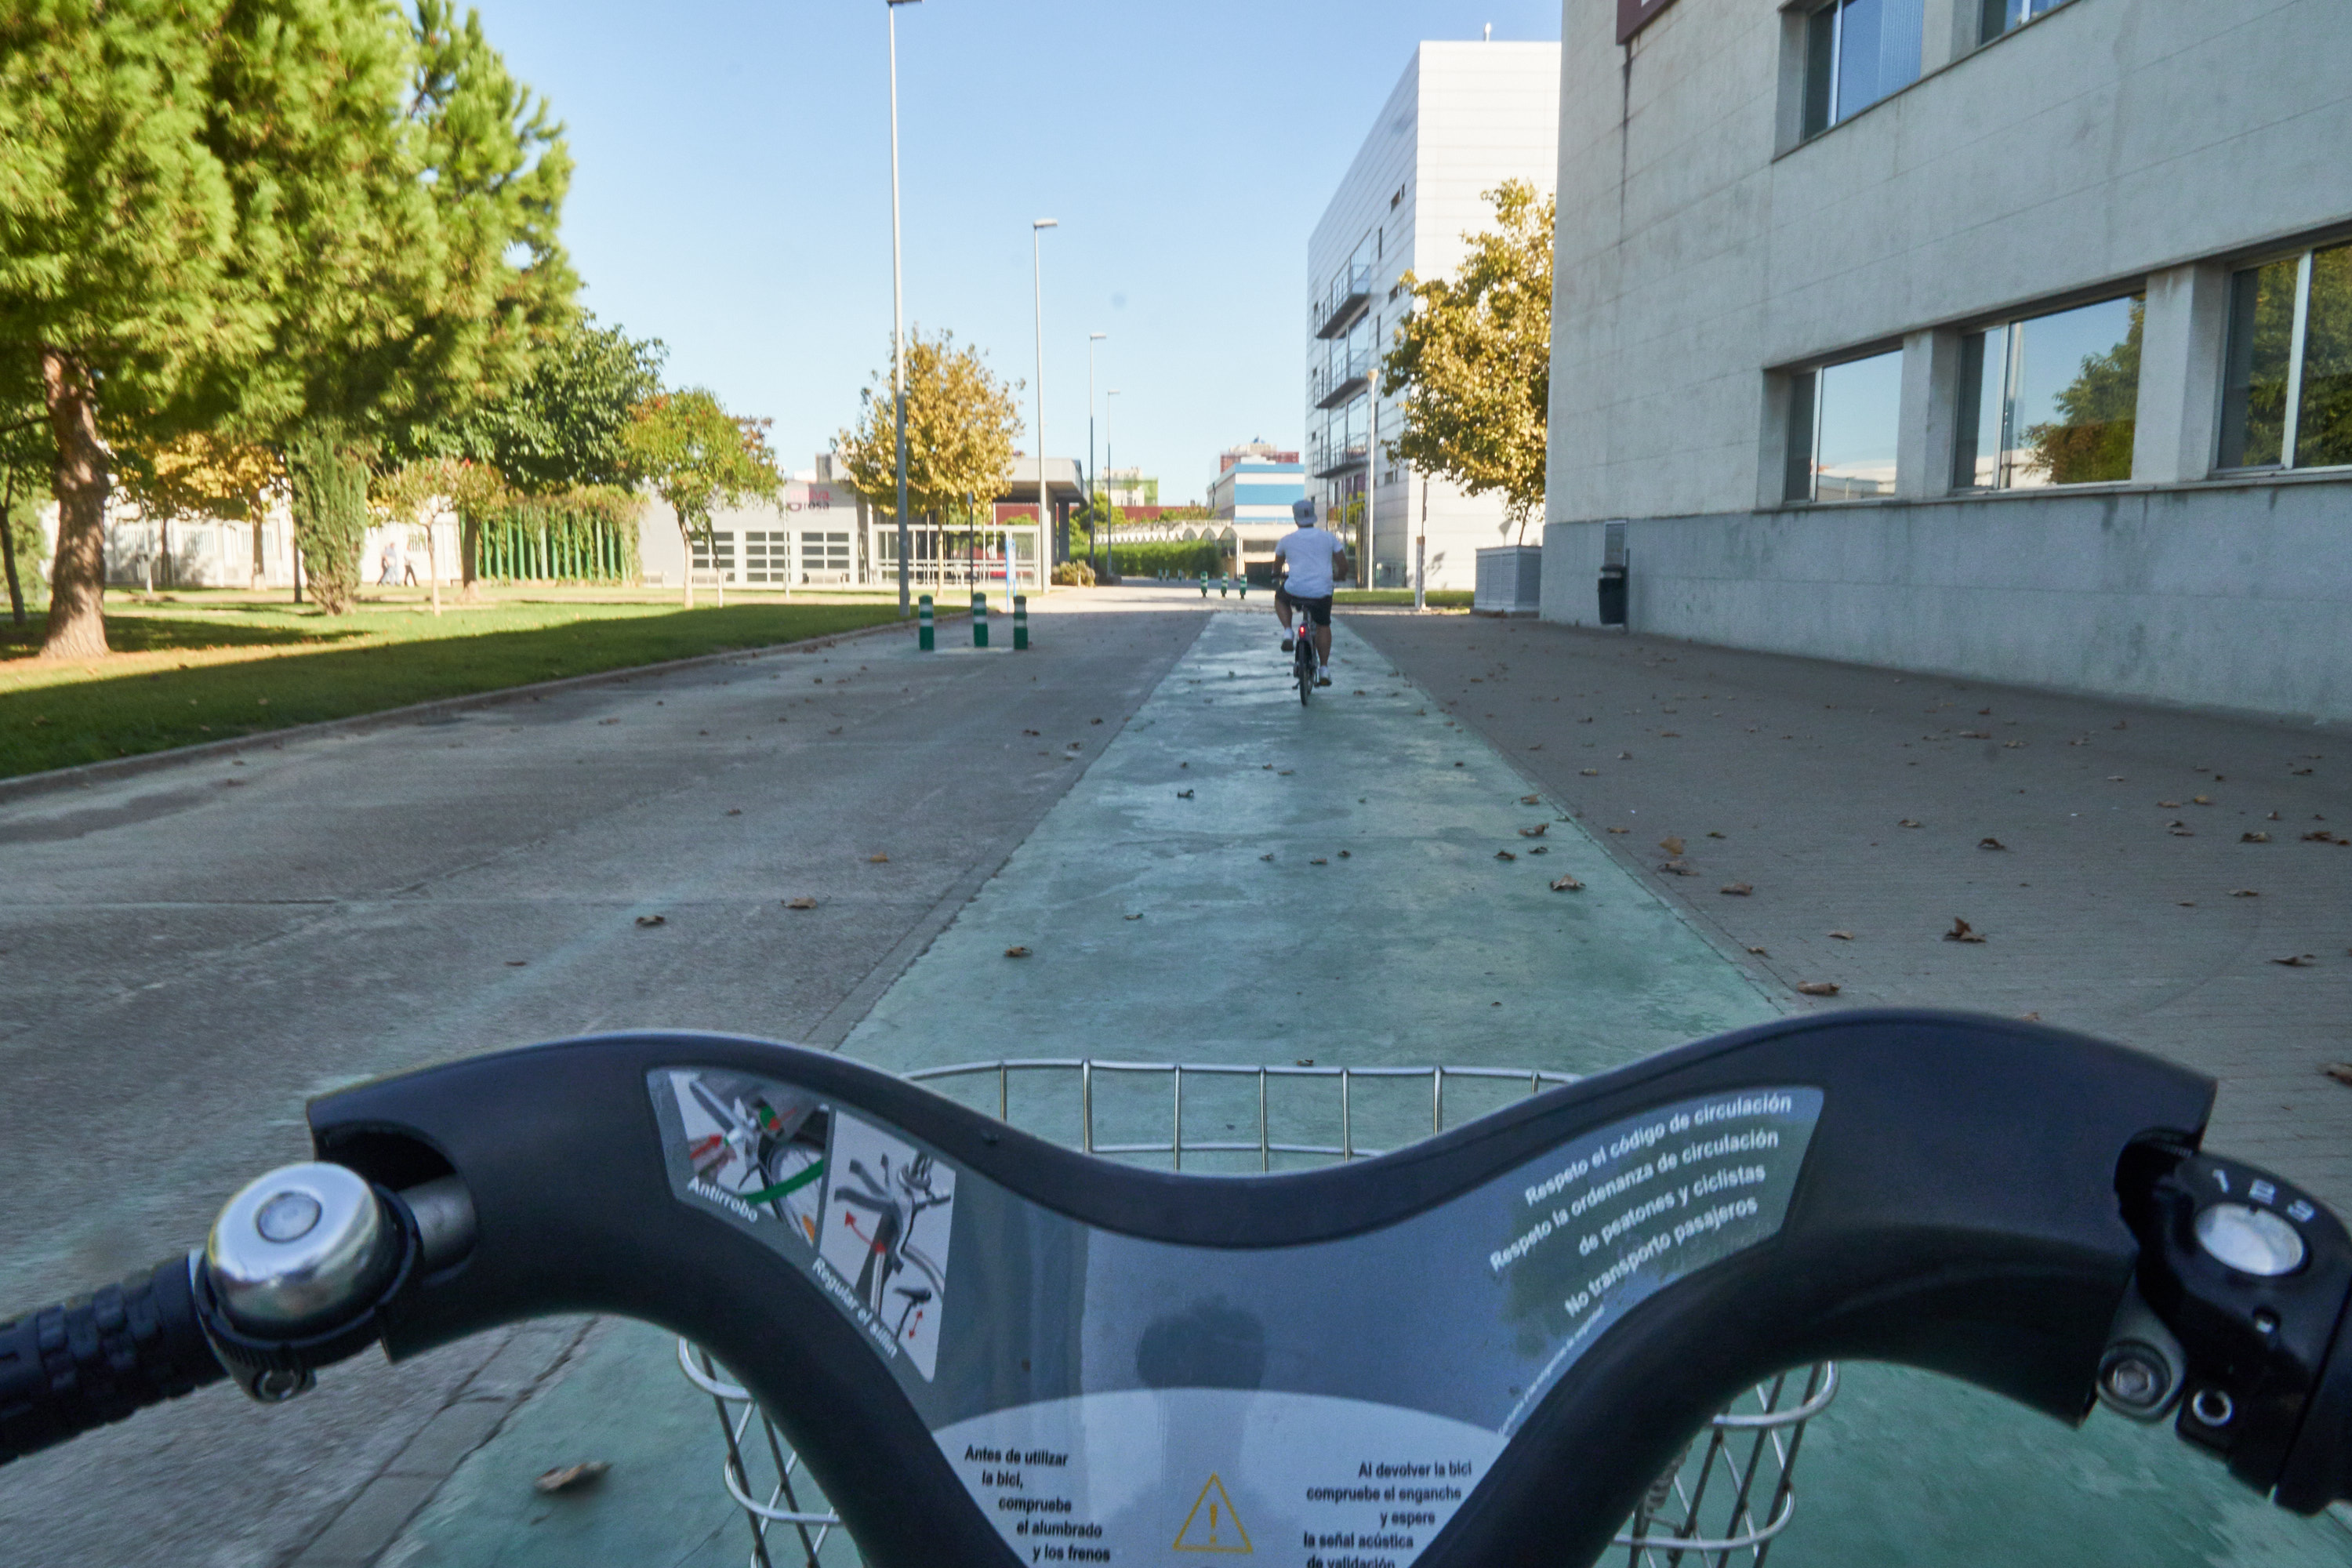 There are 3 Valenbisi Stations inside the campus of UPV, but be quick: cause you are not the only student who wants to get a bike or a place for one...